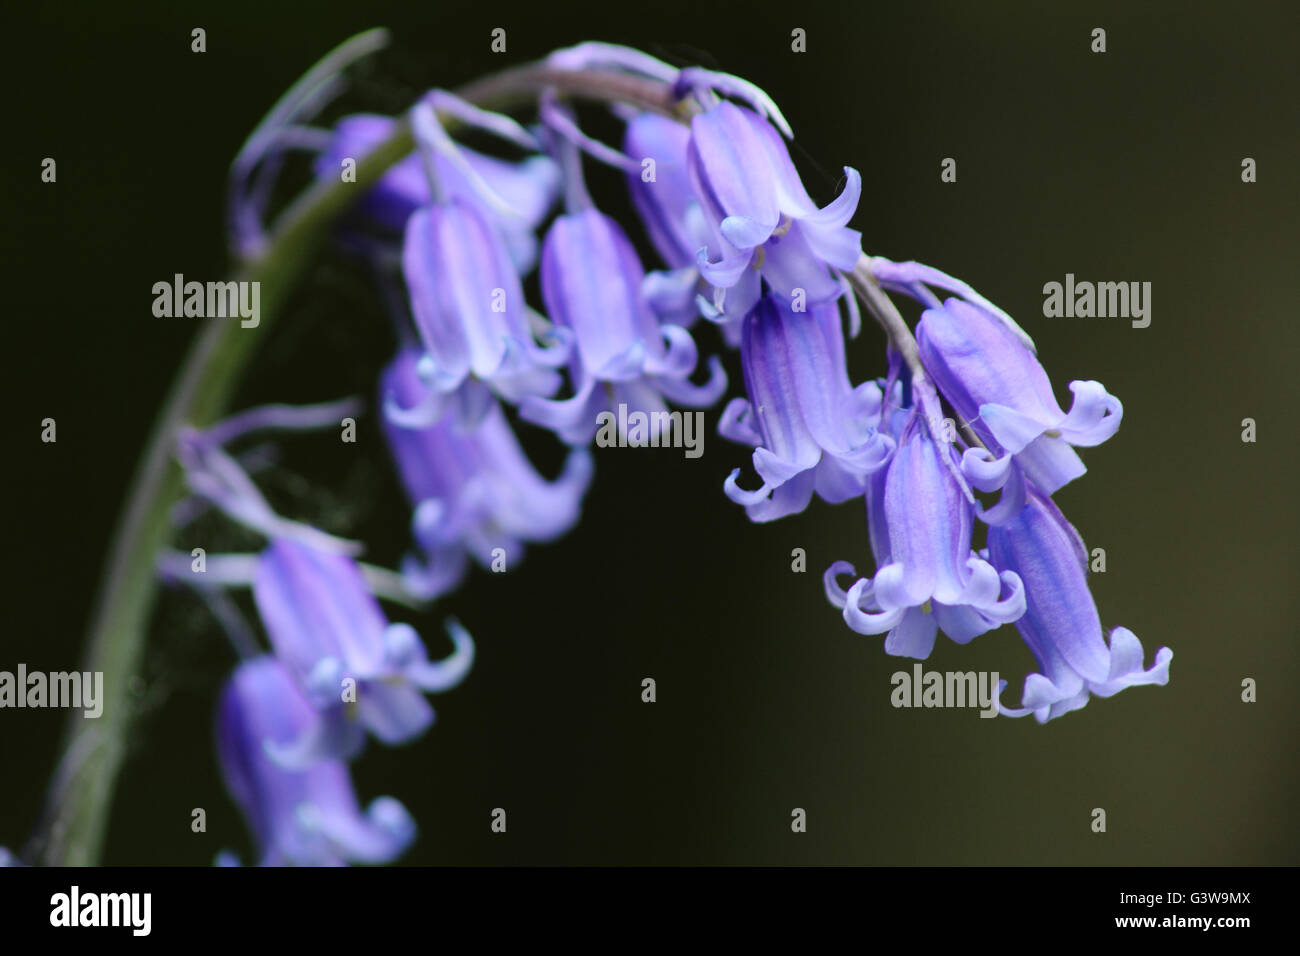 Flowerhead of an English bluebell (hyacinthiodes non-scripta) in a deciduous woodland in Derbyshire  England UK - Stock Image